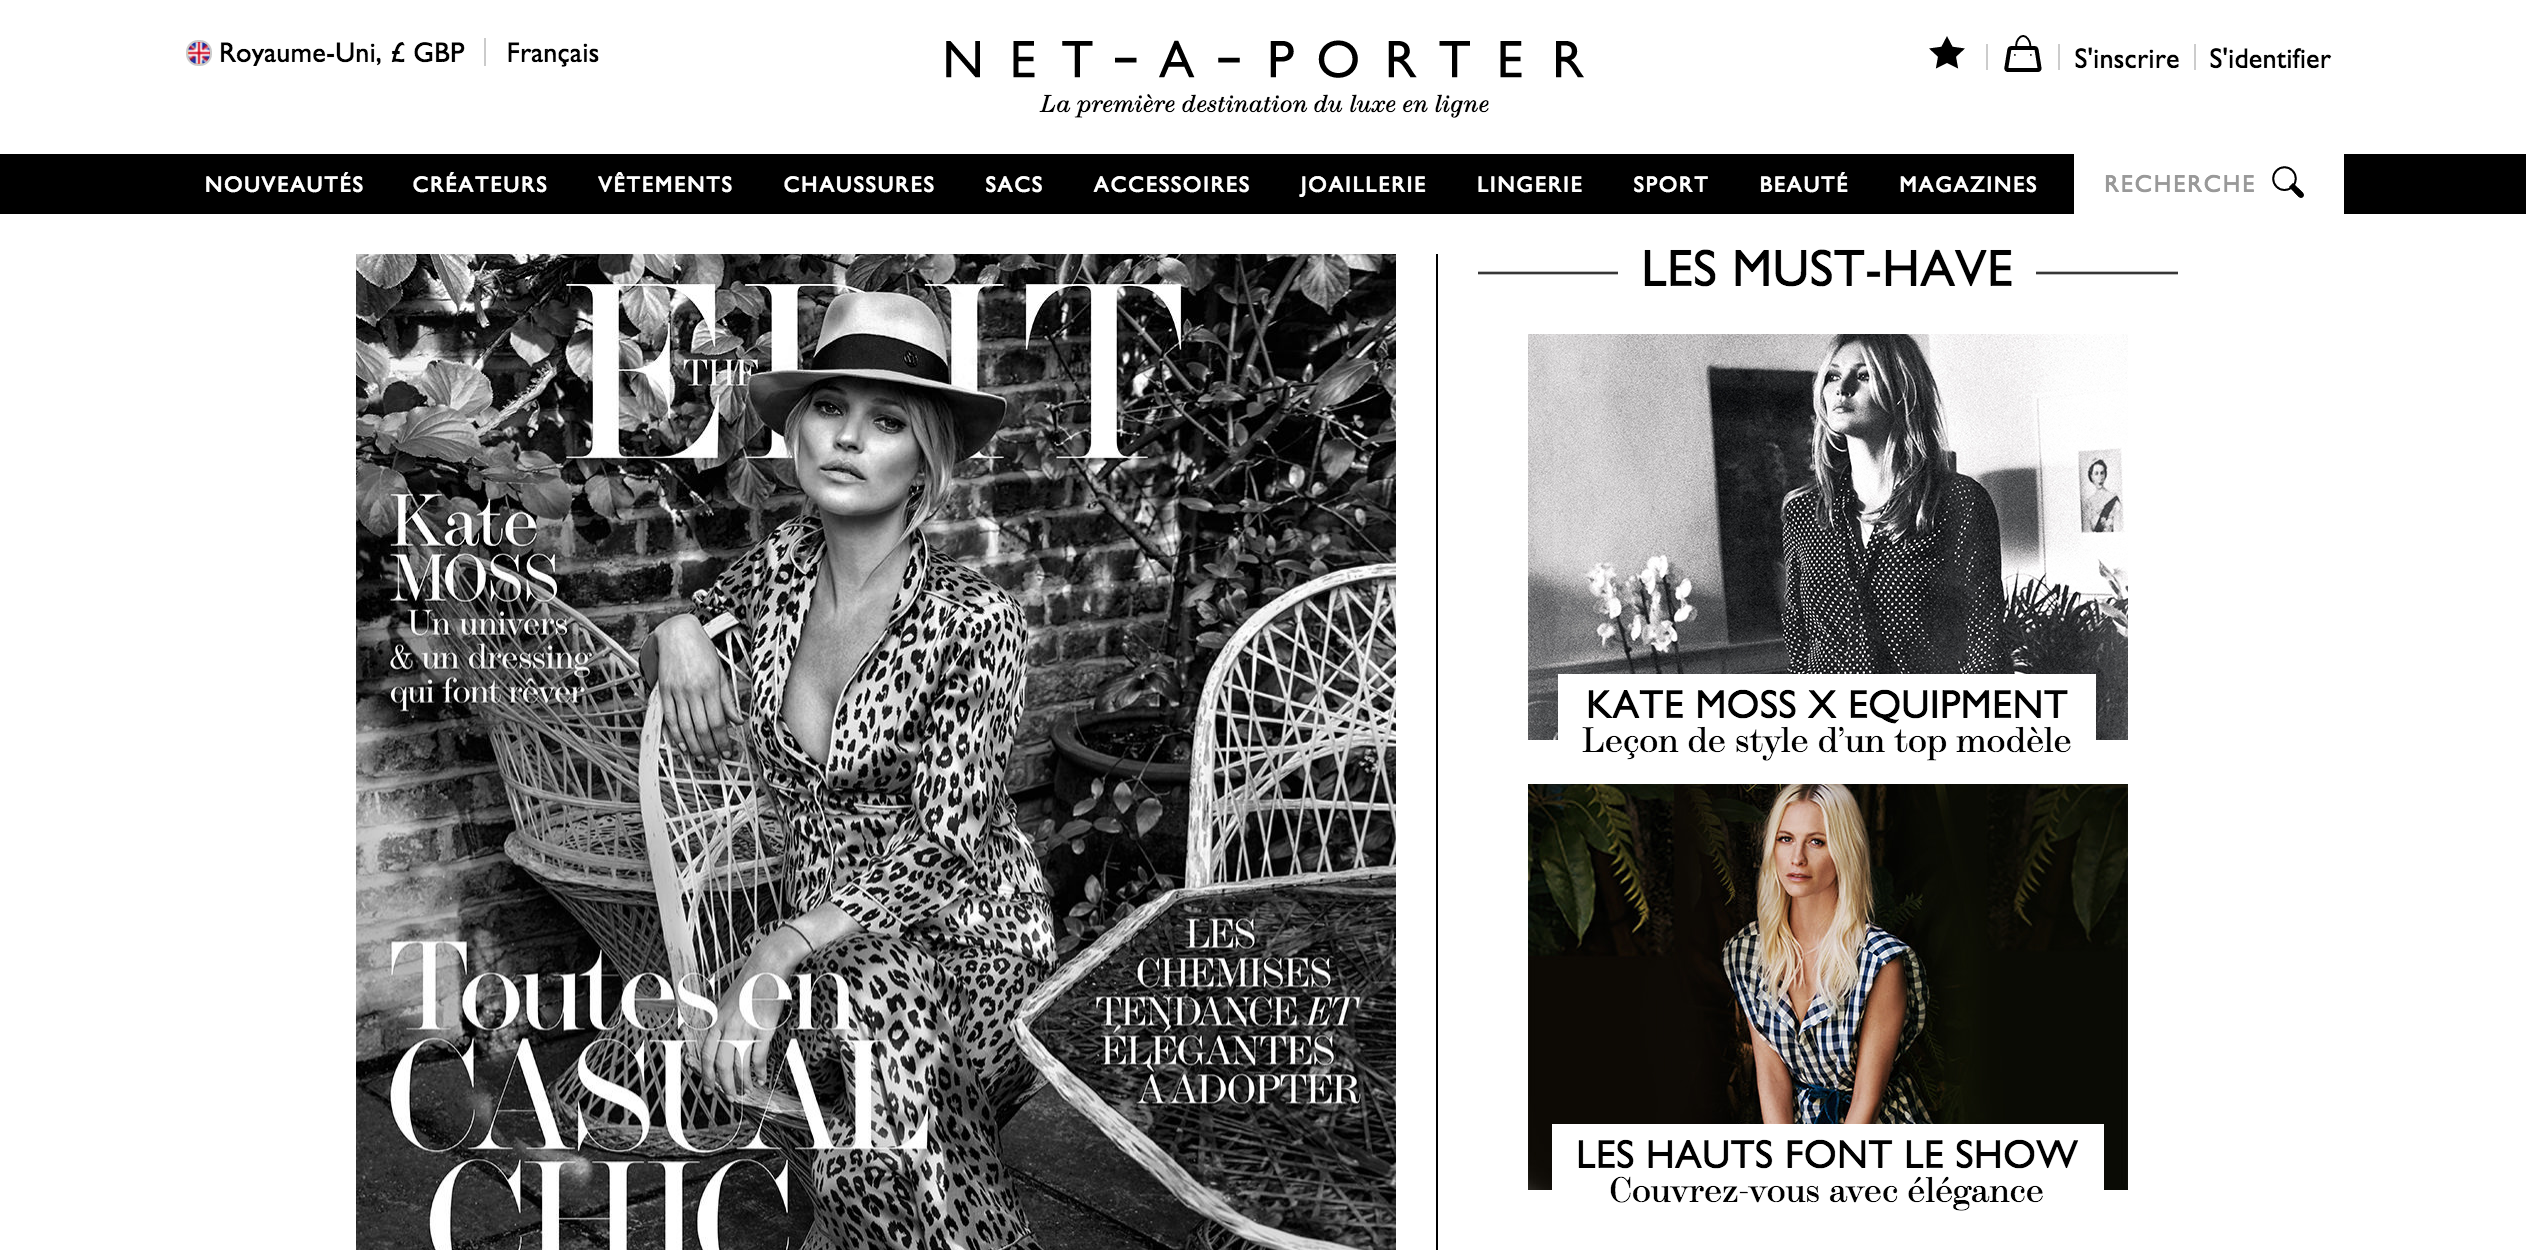 SITE web mode beauté roxane mls net a porter